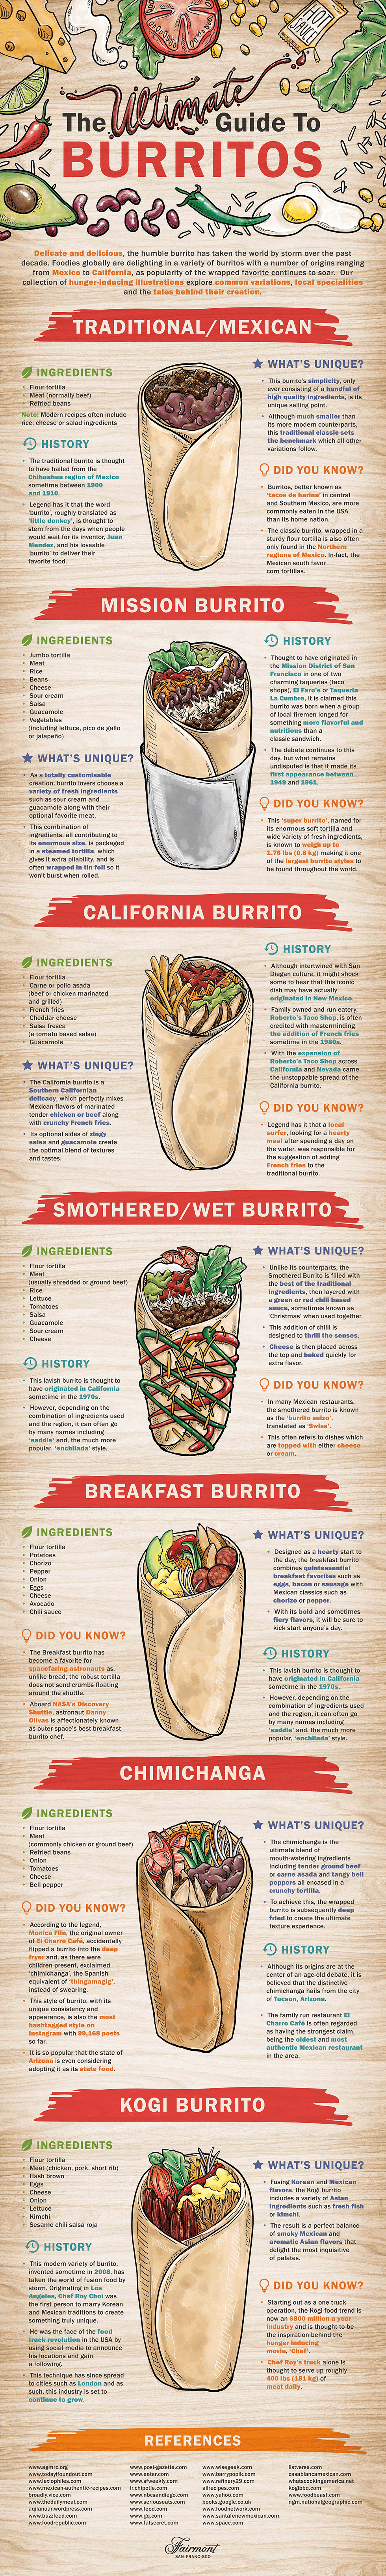 From the traditional Mexican to the California burrito, discover the most popular styles worldwide and their origins.